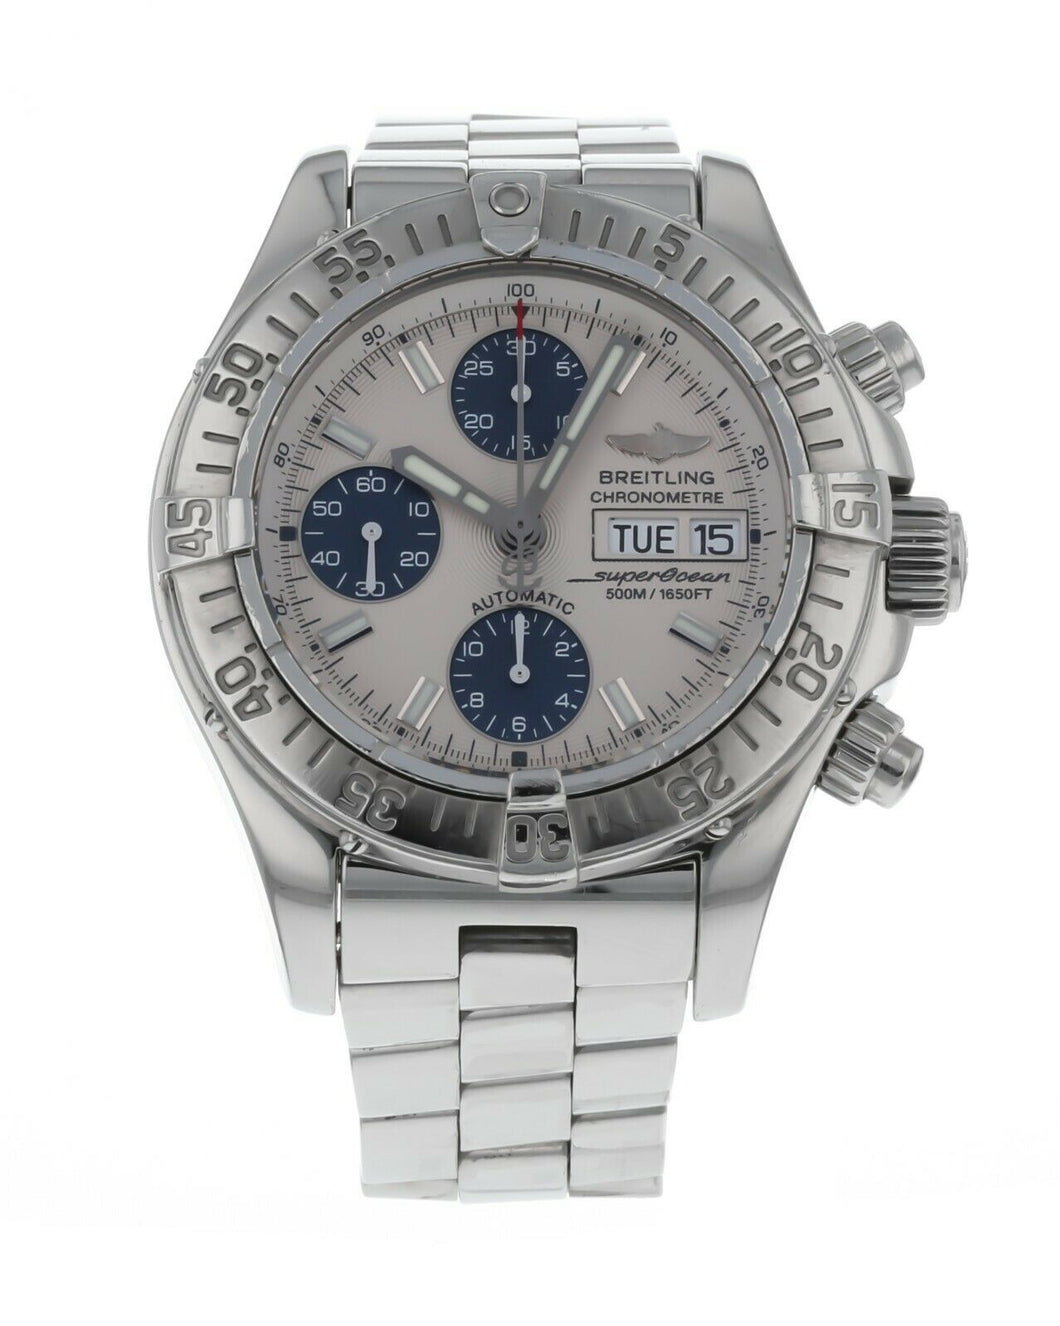 Breitling Superocean Chronograph Stainless Steel Automatic Men's Watch A13340